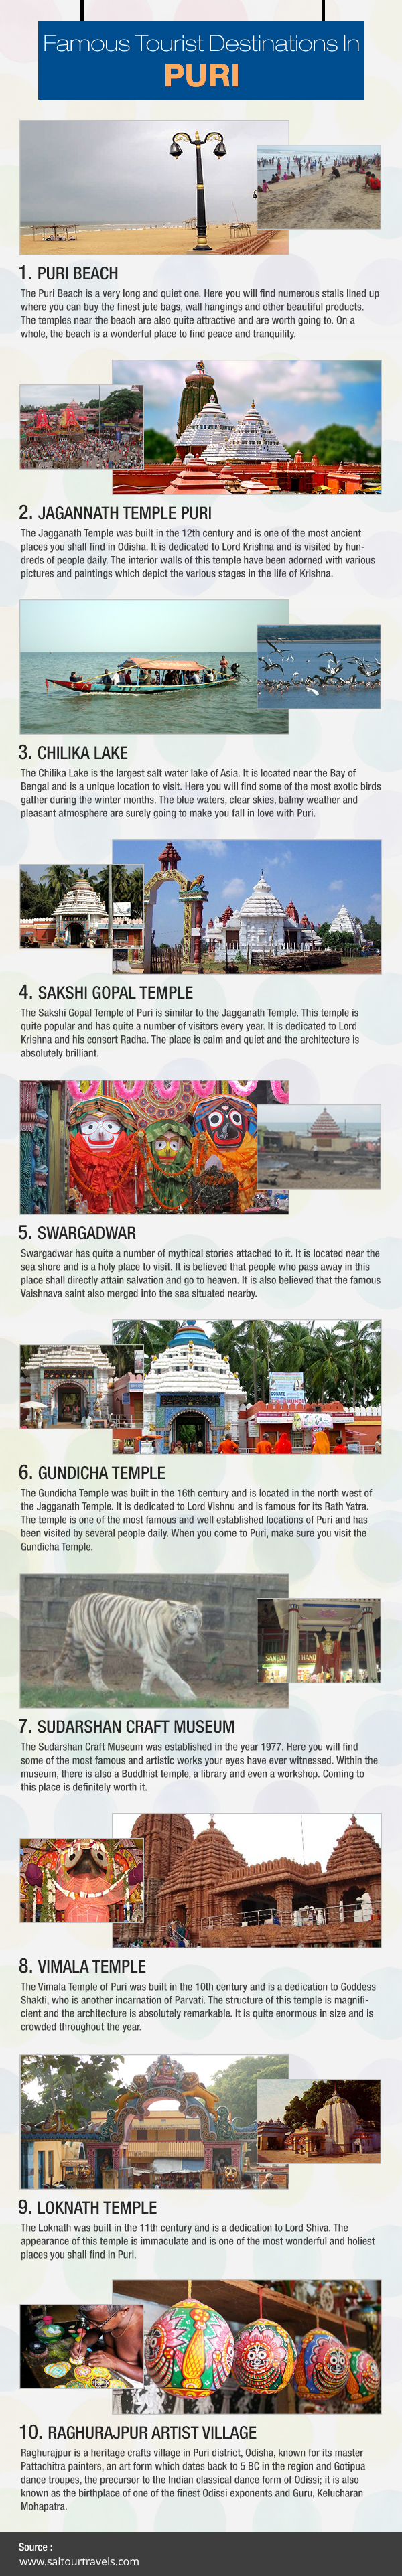 Famous-Tourist-Destinations-in-Puri